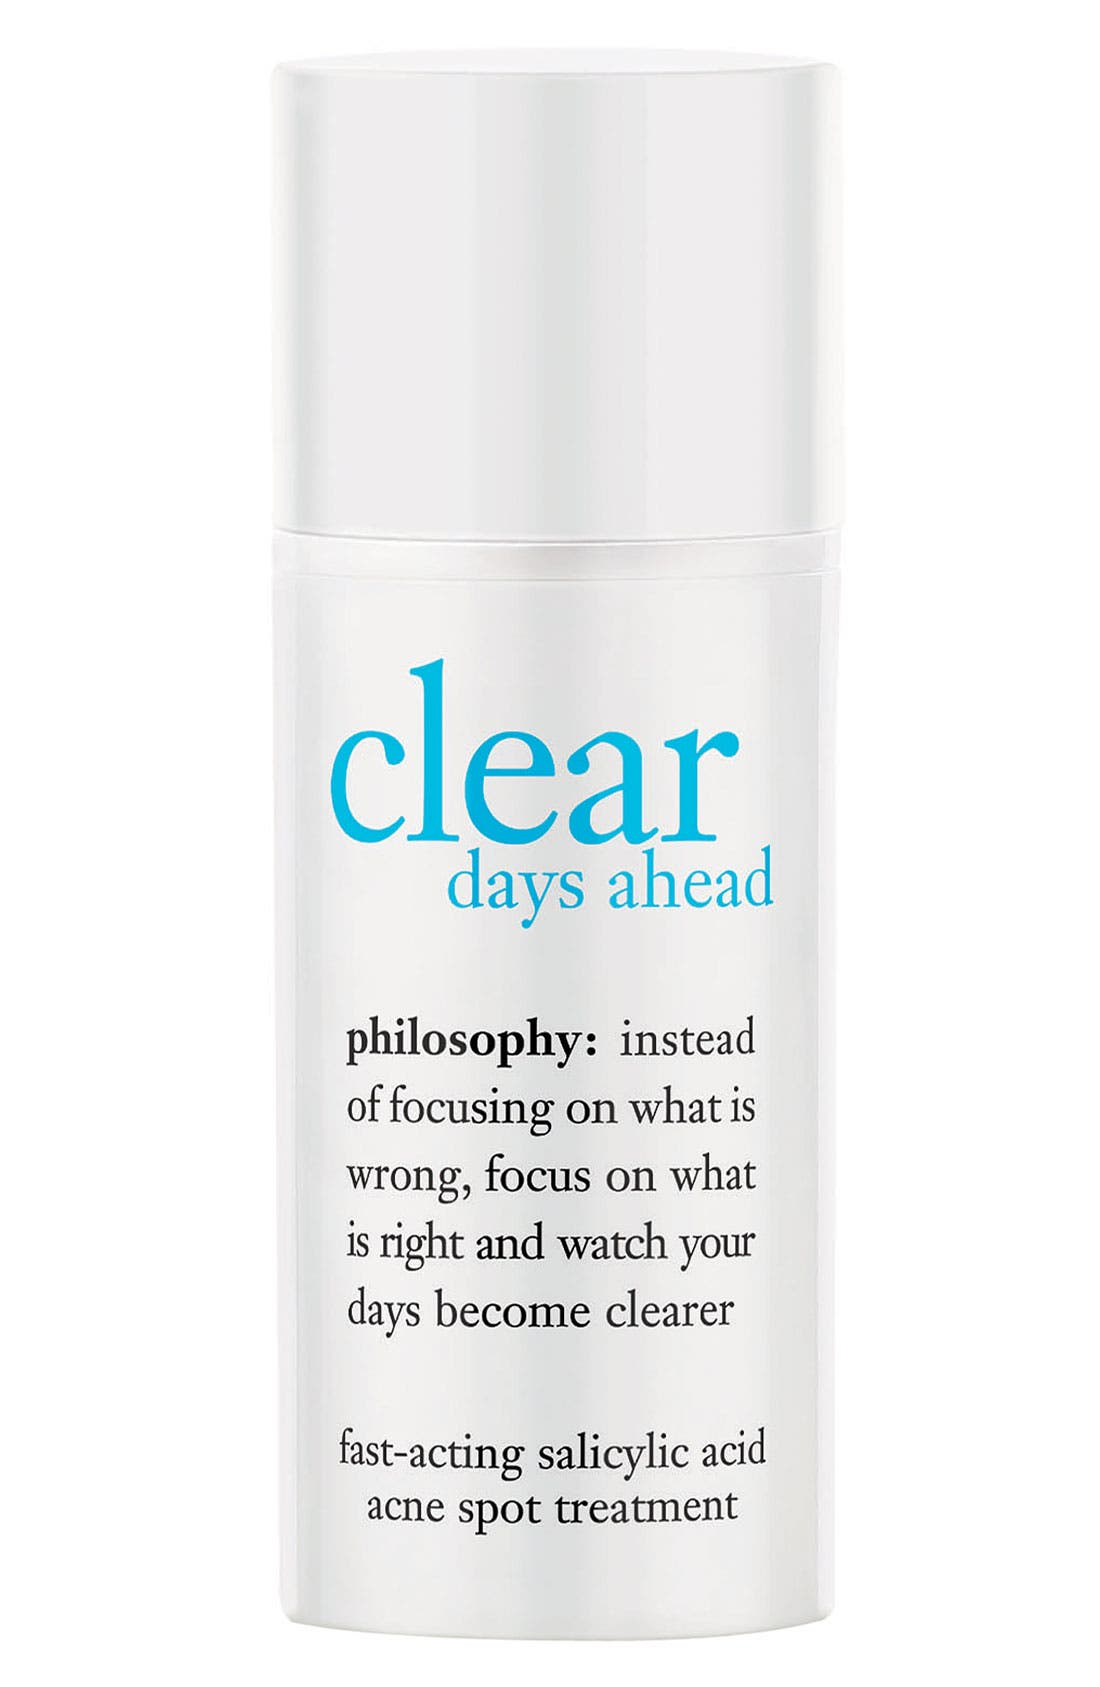 philosophy 'clear days ahead' fast-acting acne spot treatment